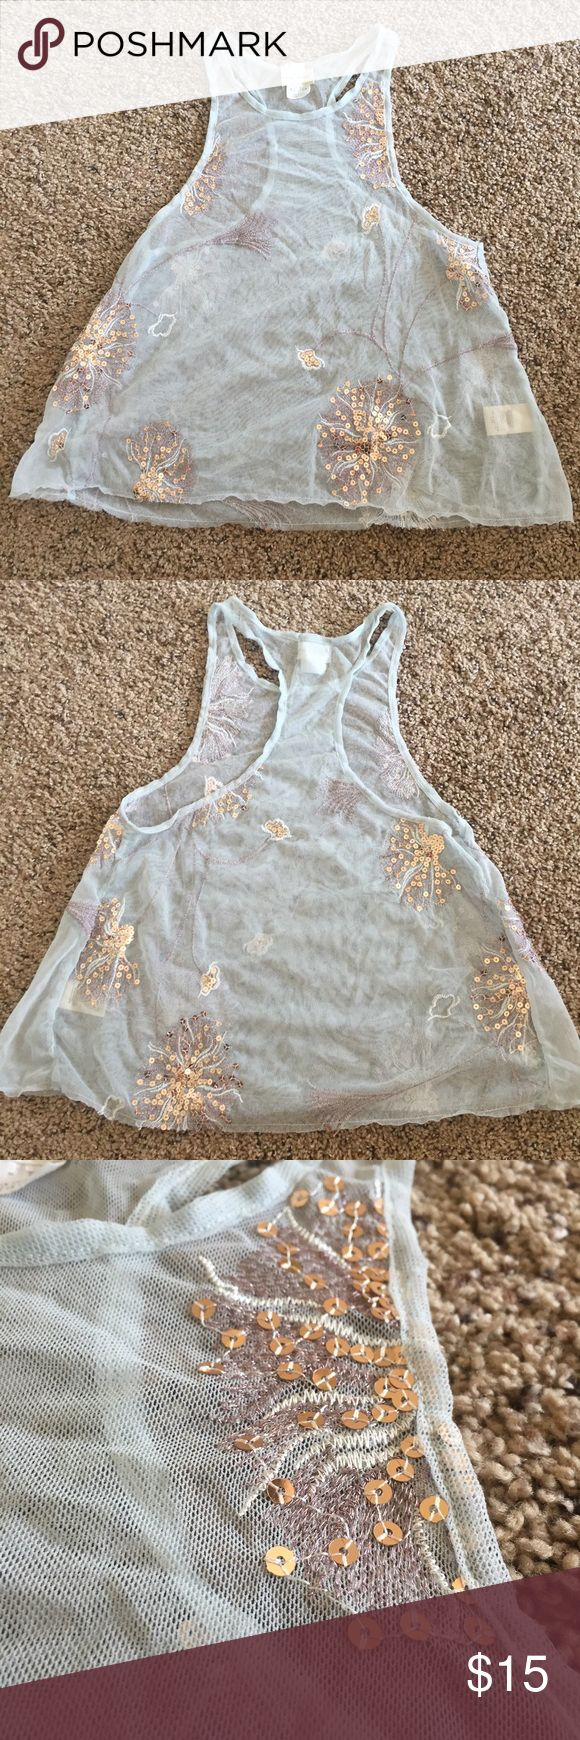 Free People sequined sheer crop top Light blue mesh sequined crop top by free people (intimately). Cute for layering! Hits right at my belly button. Free People Tops Crop Tops